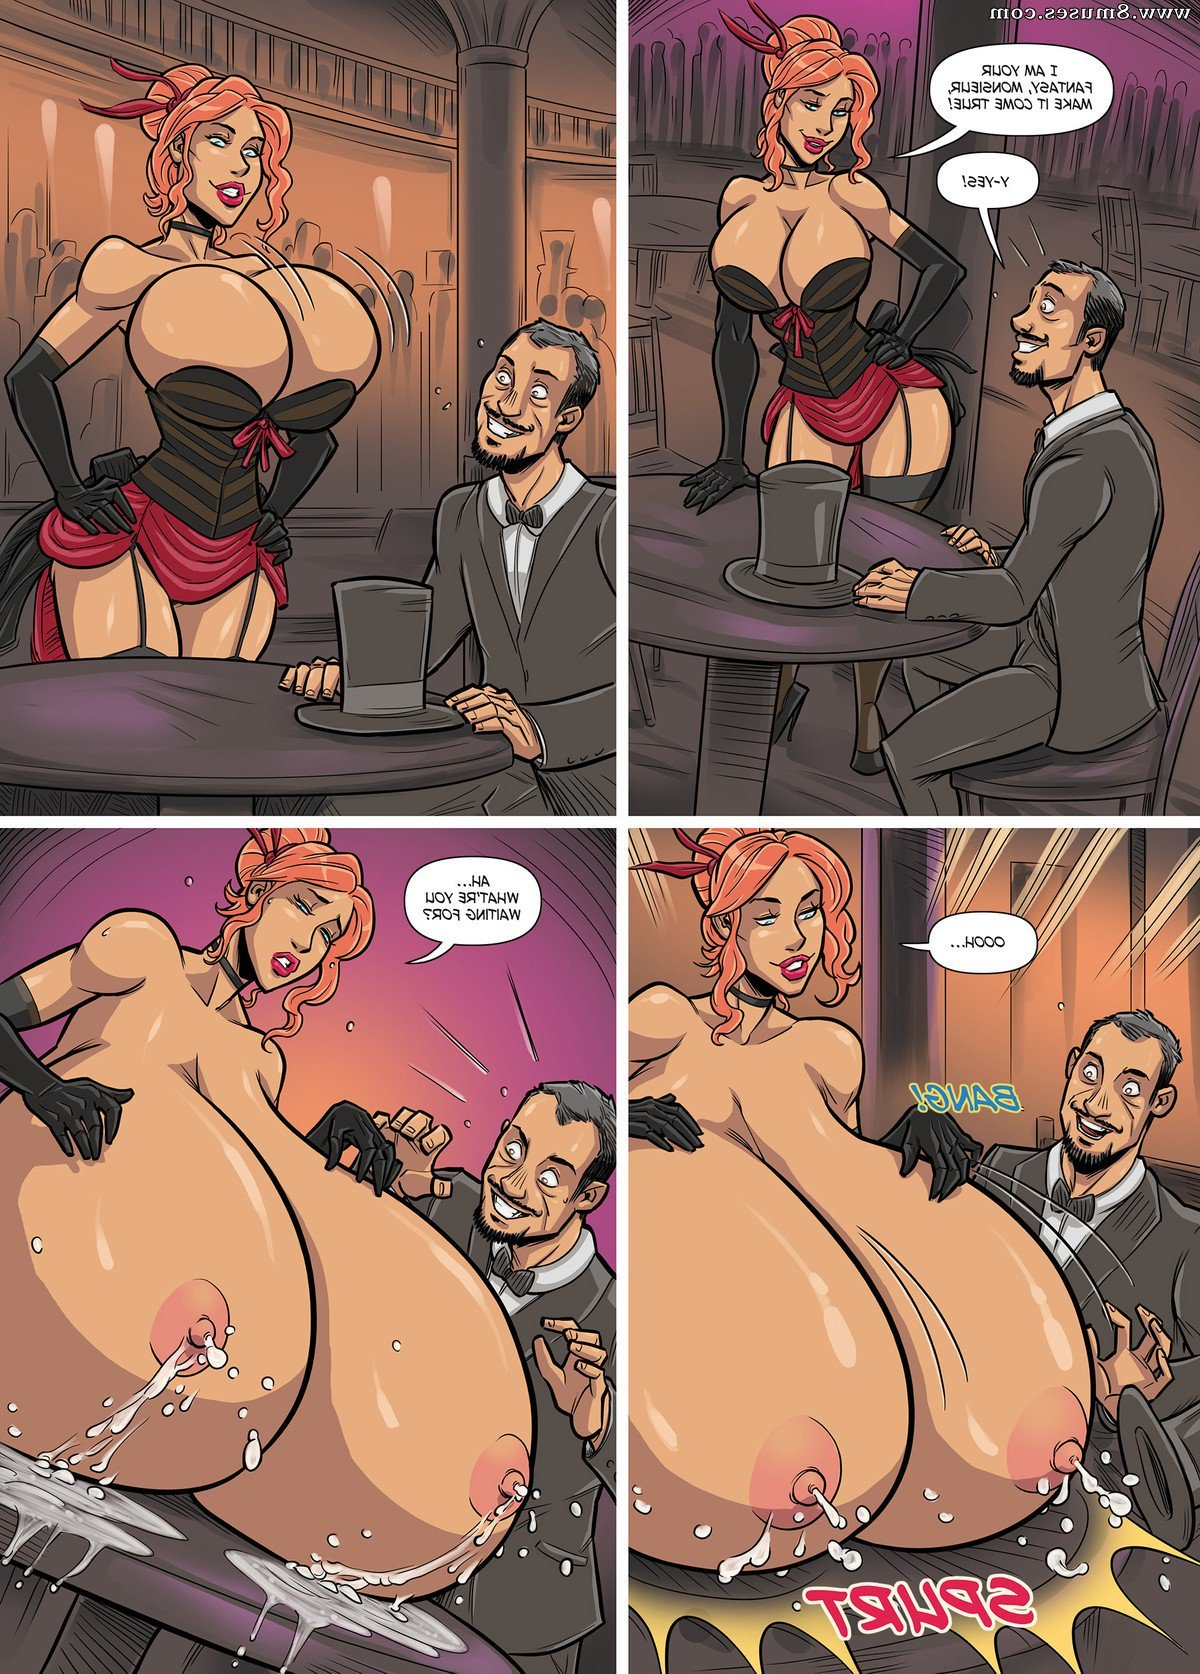 Expansionfan-Comics/The-Growing-Mistress/Issue-1 The_Growing_Mistress_-_Issue_1_15.jpg